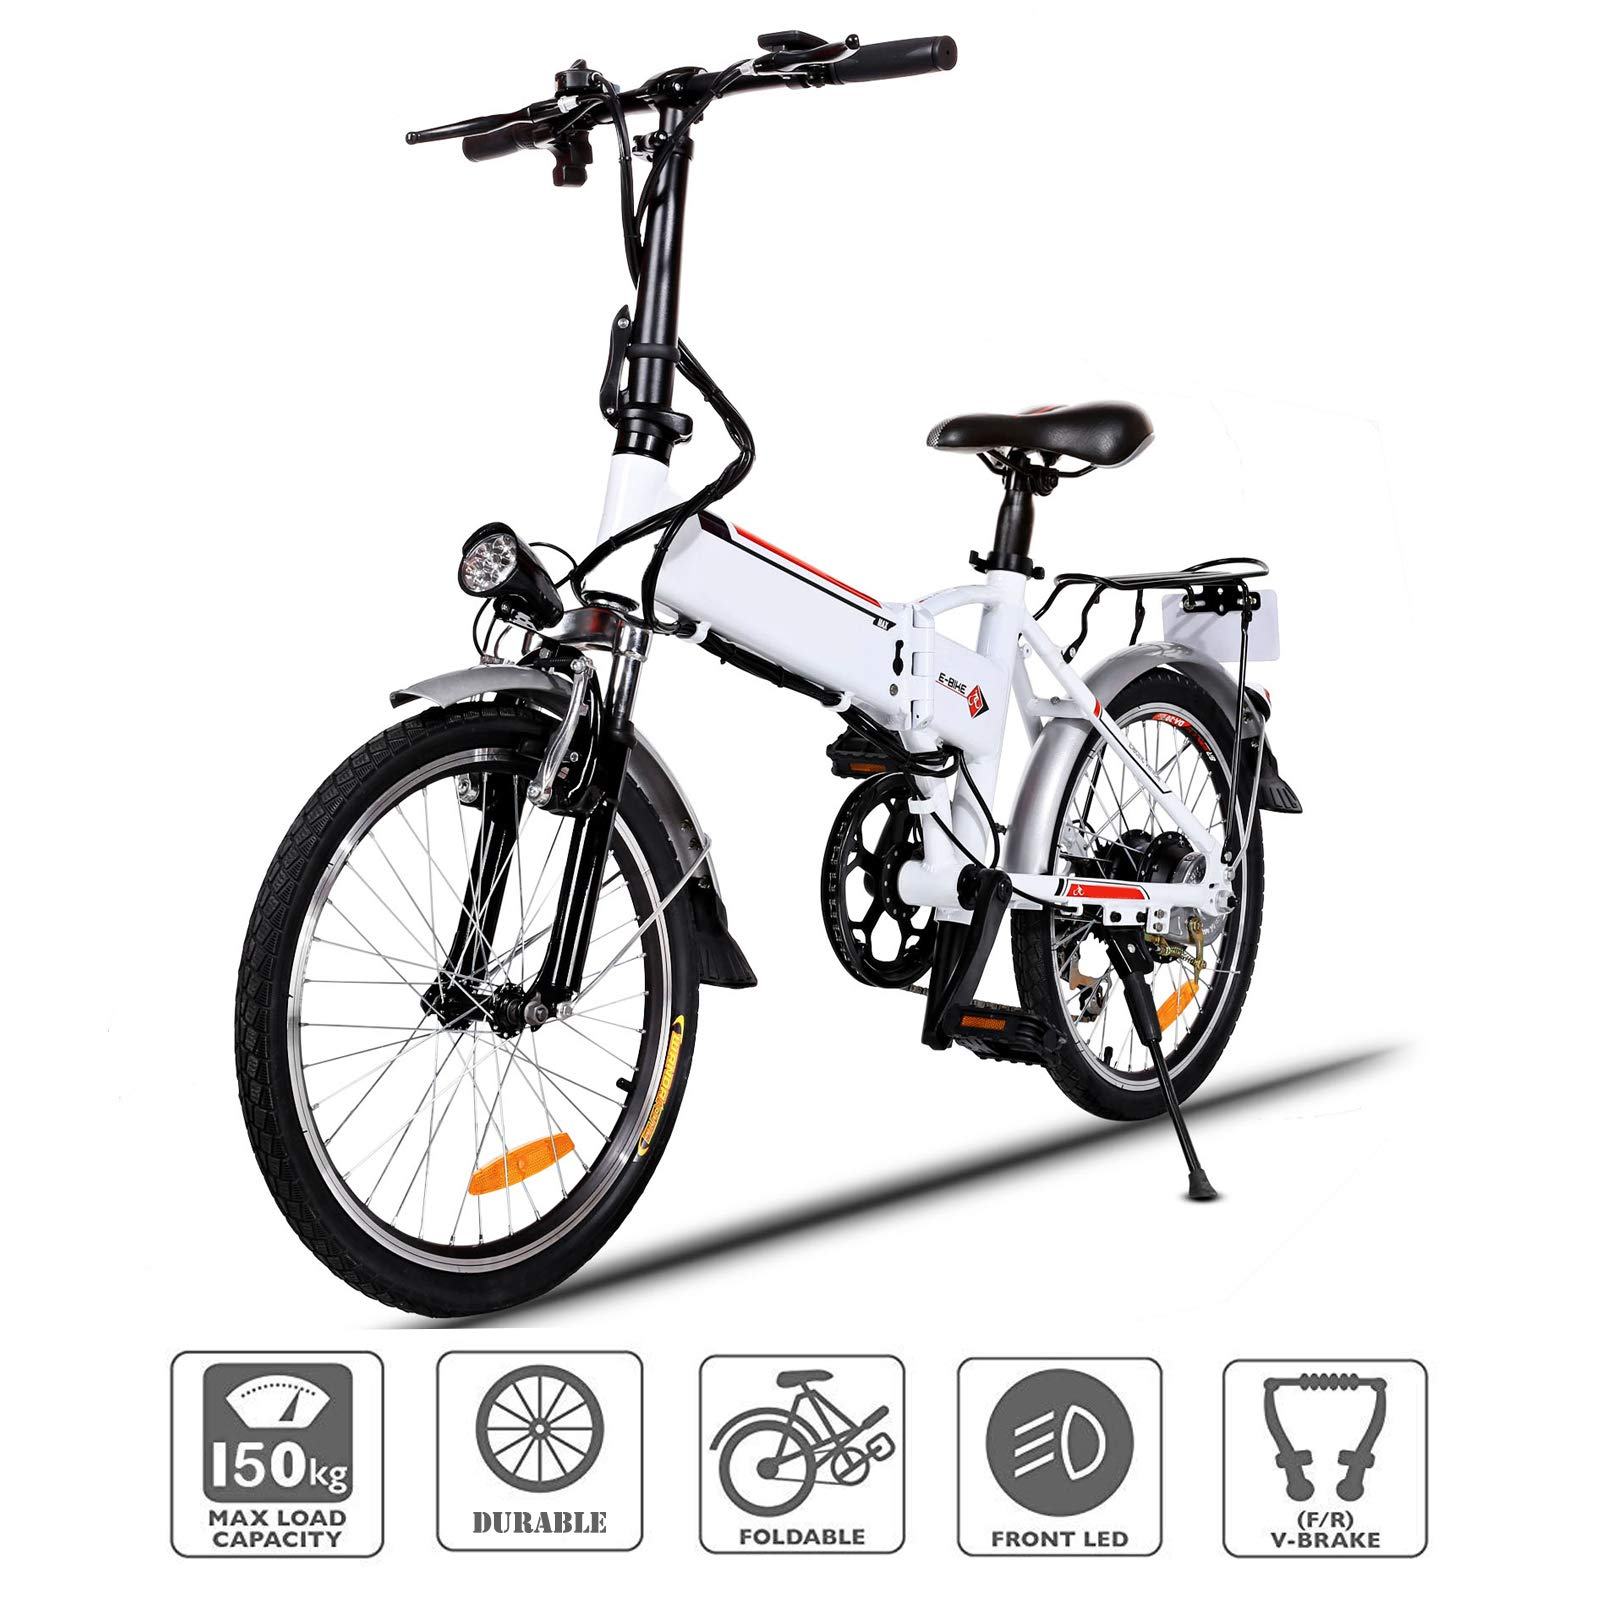 01063f2e47e Oanon Electric Bicycle Mens Mountain Bike with 36V Lithium-lon Battery,  250W Power Plus